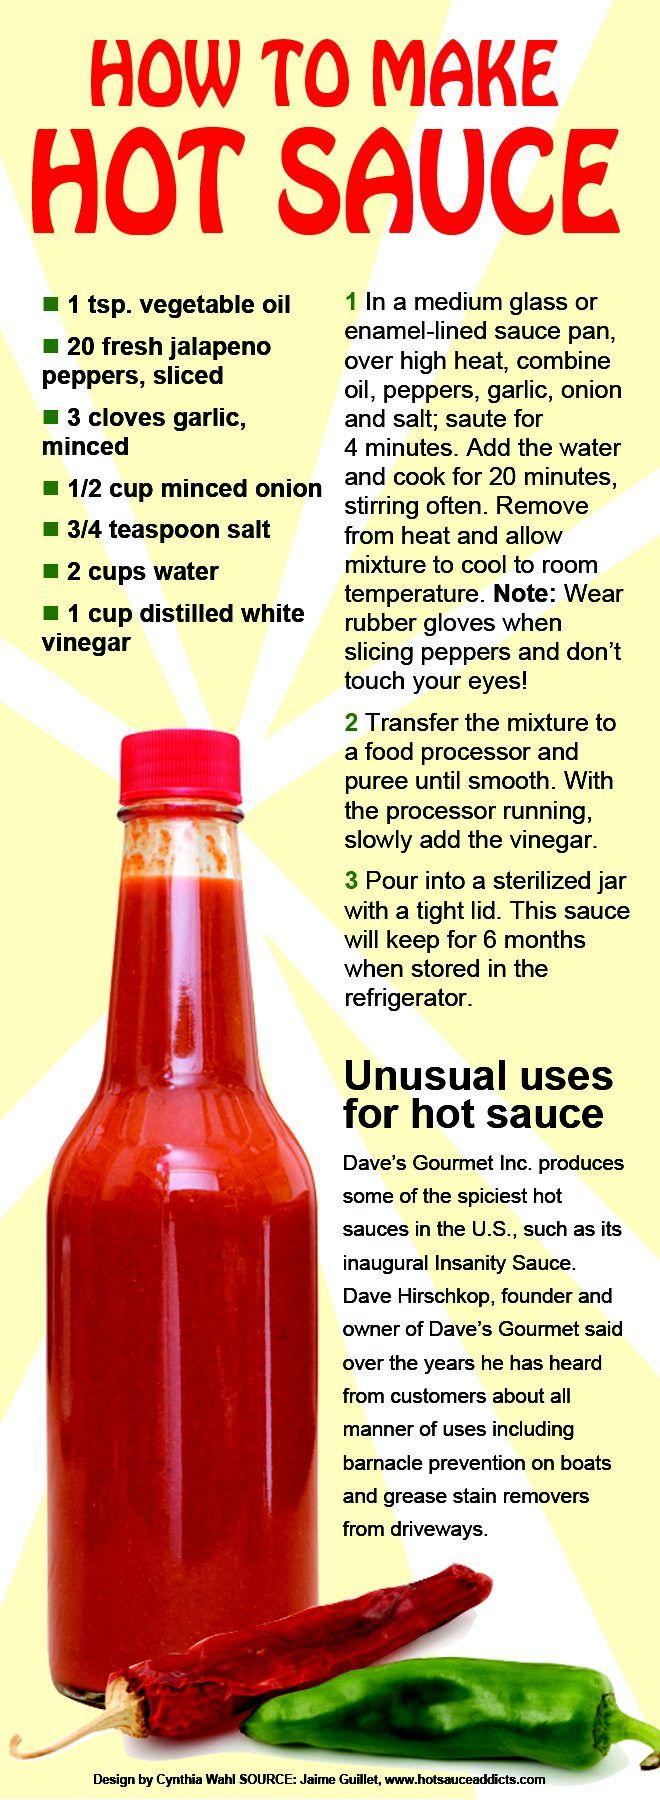 A recipe for hot sauce. thumbnail